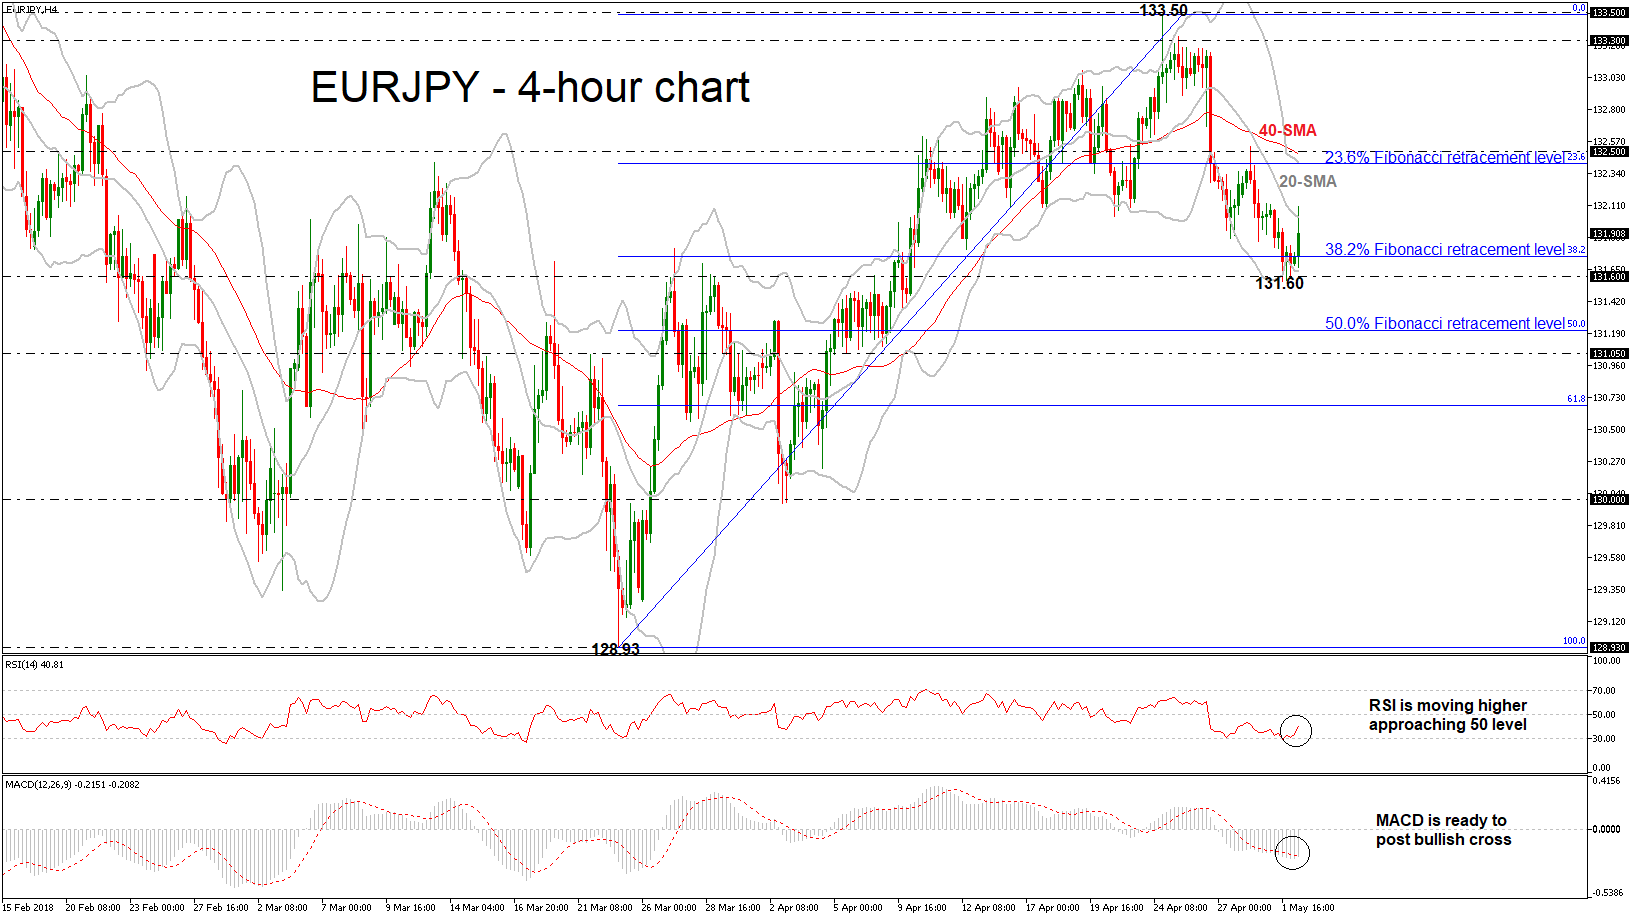 EURJPY Runs Above 38 2% Fibonacci Mark After Creating